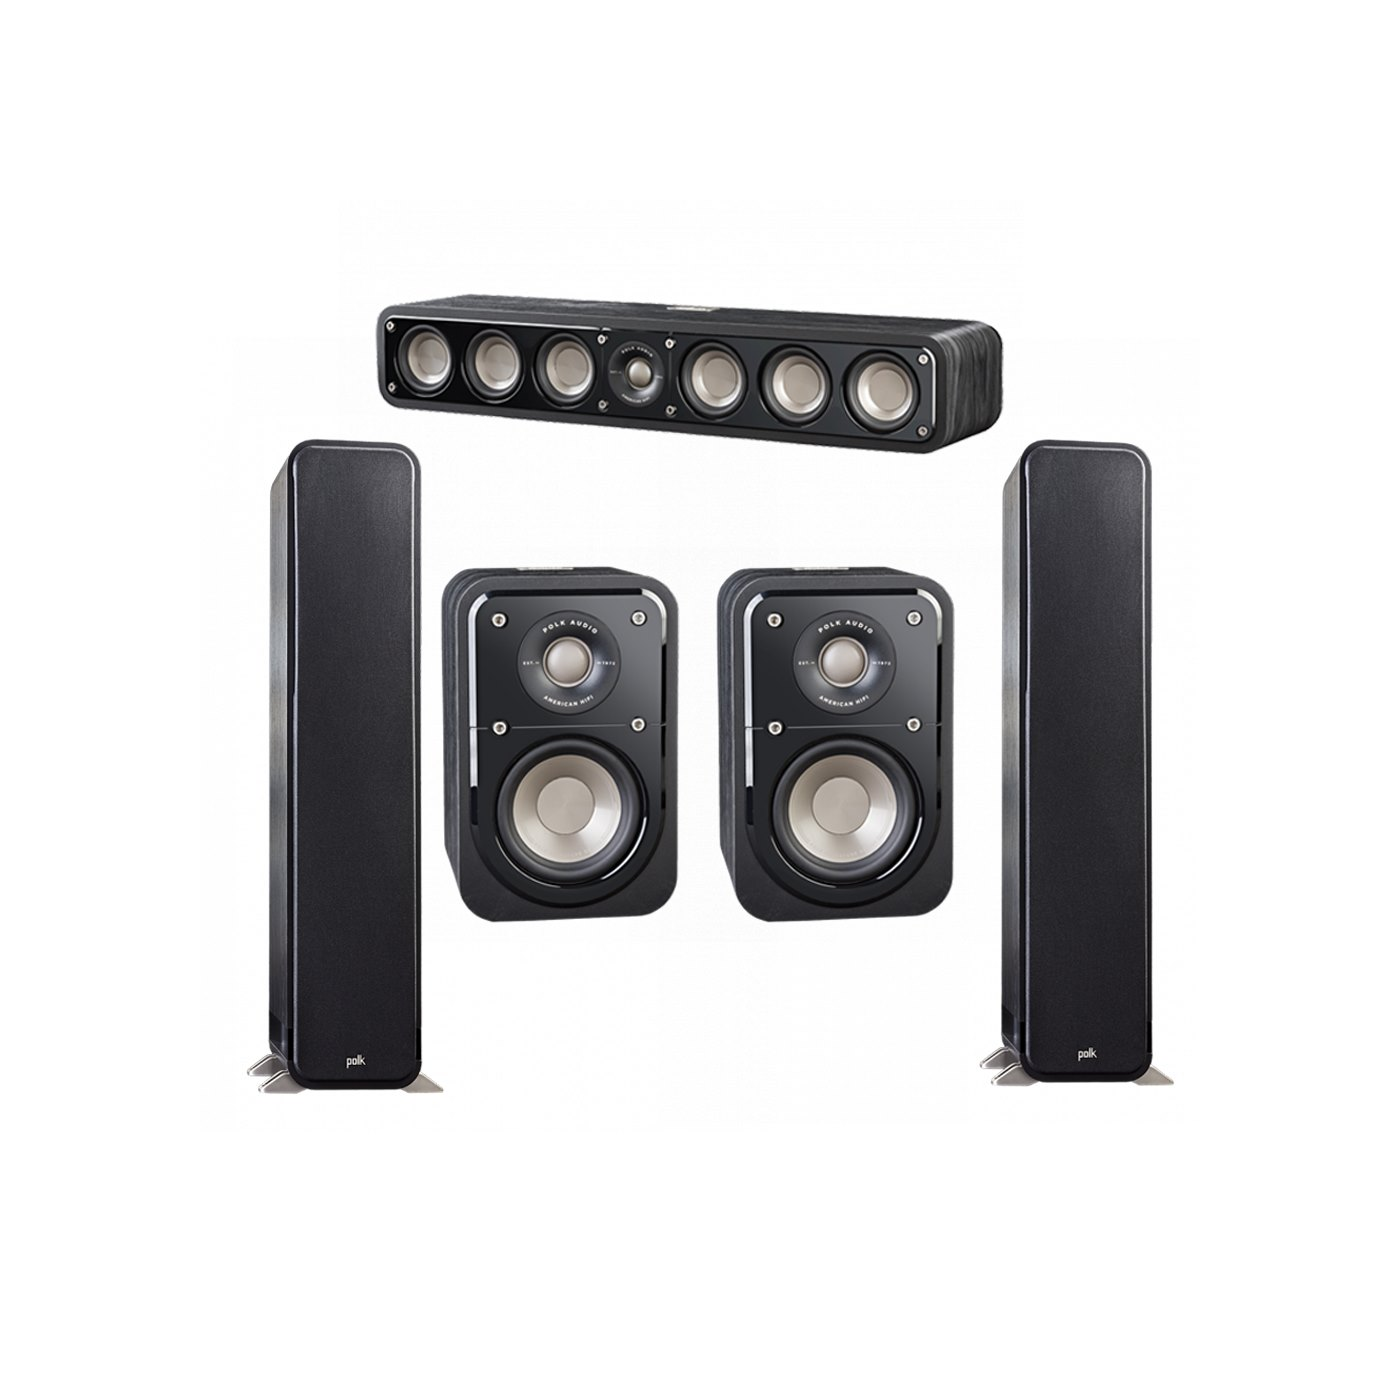 Polk Audio Signature 5.0 System with 2 S55 Tower Speaker, 1 Polk S35 Center Speaker, 2 Polk S10 Surround Speaker